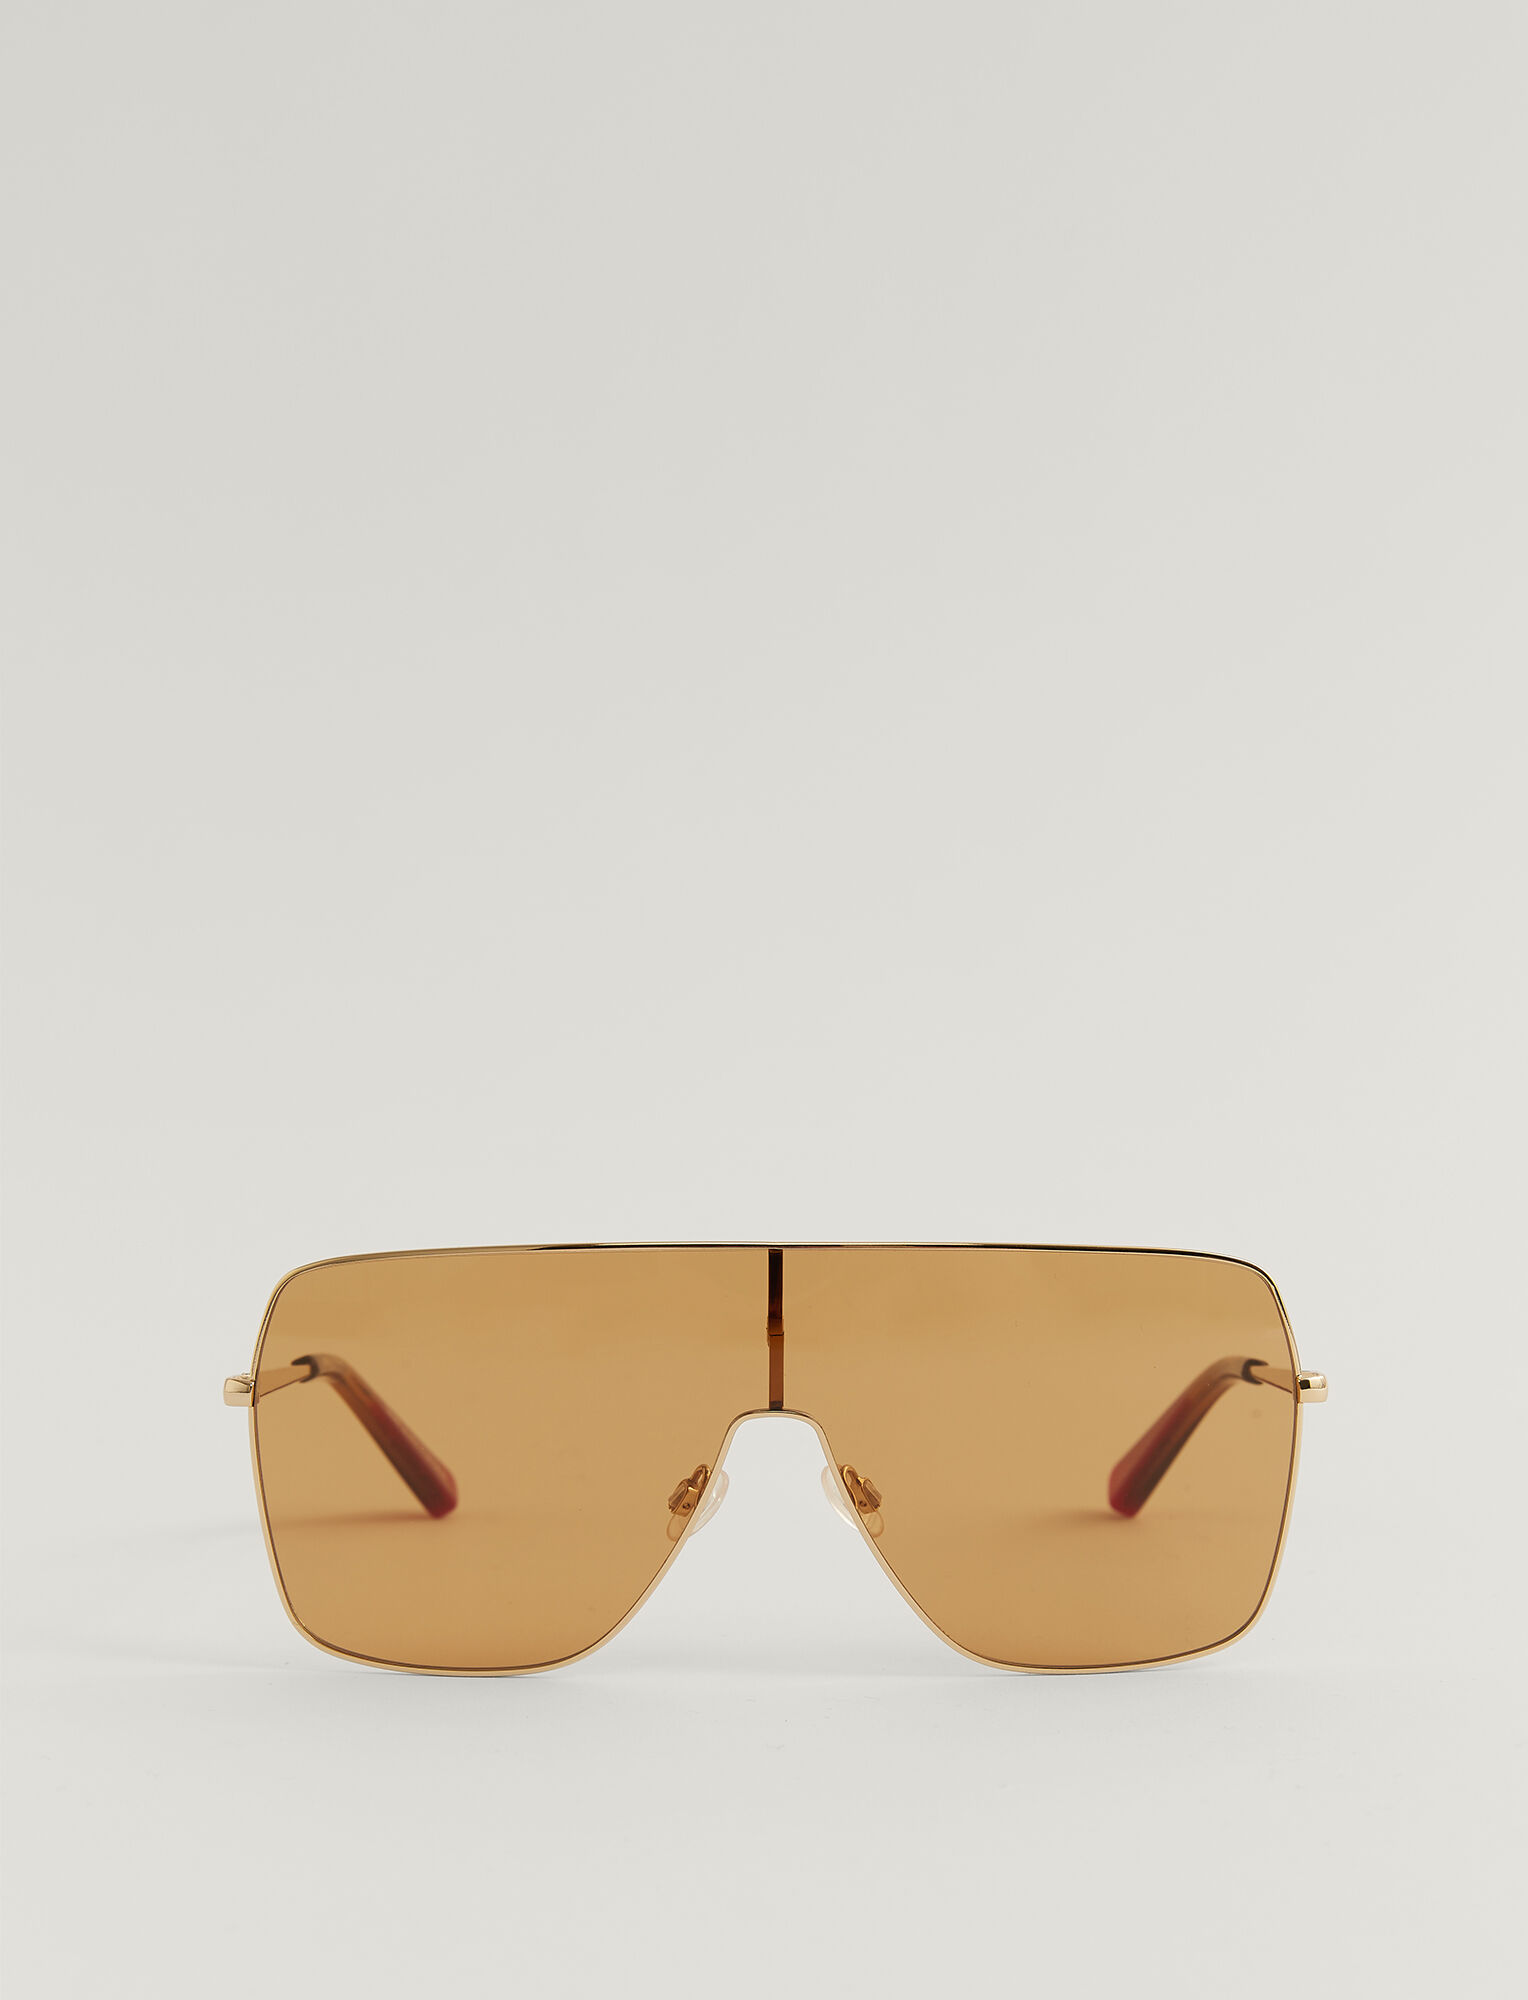 Joseph, Oversized D-Frame Sunglasses, in HONEY